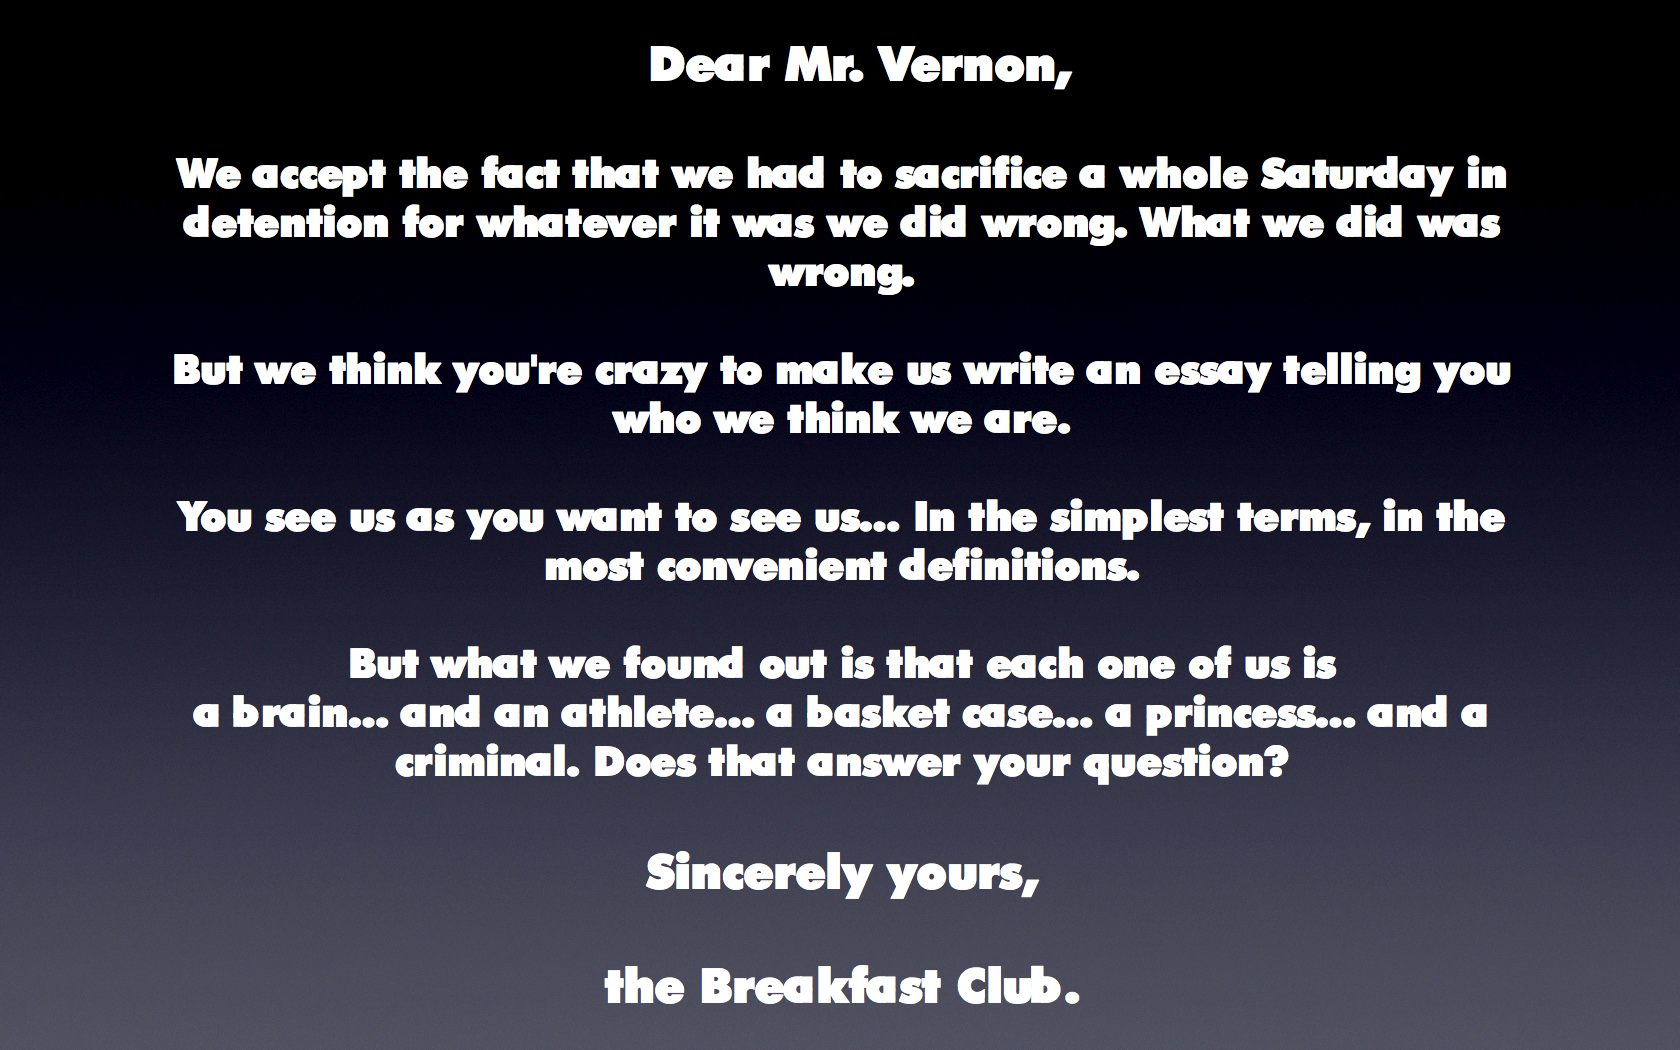 007 The Breakfast Club Essay Example From Jacksonbig On Movie Brians Final Questions Breathtaking Introduction Analysis Stereotypes Full